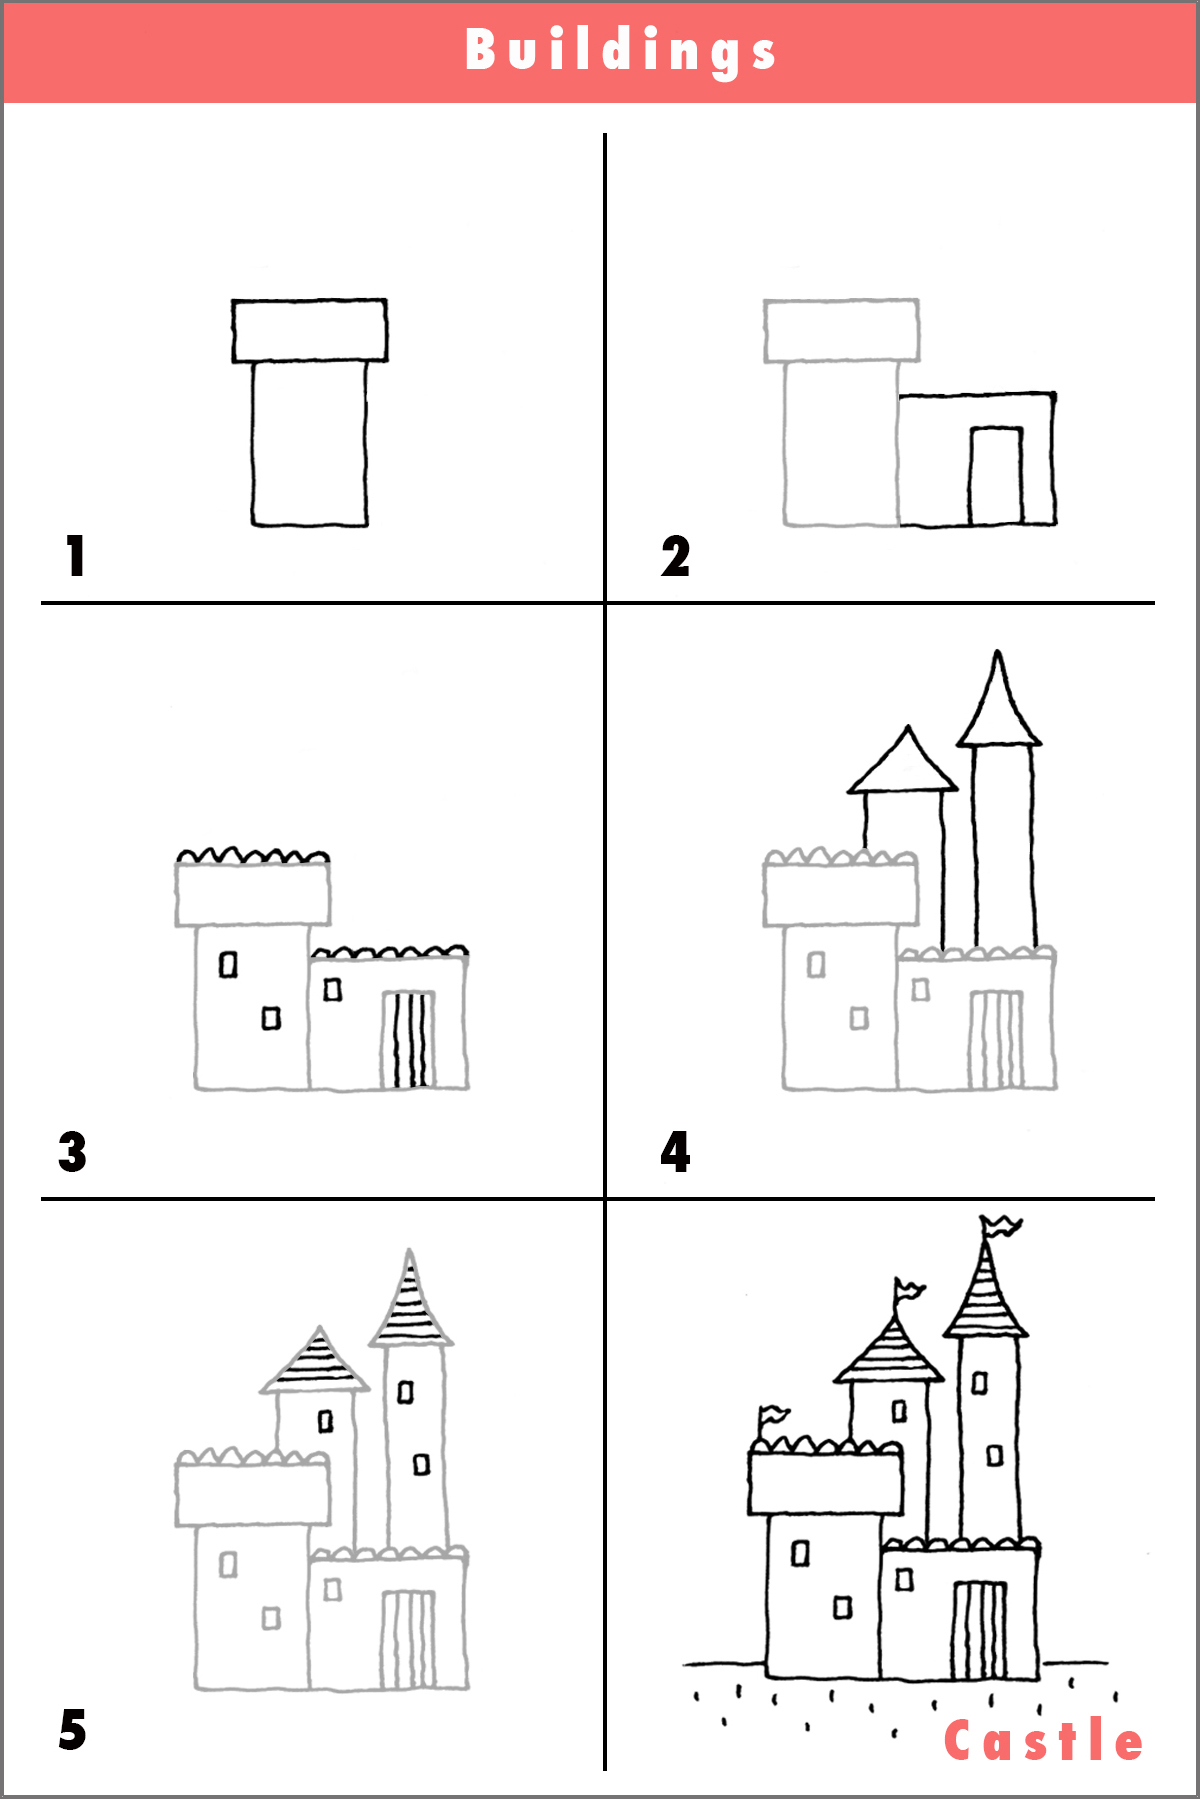 Sm castlemailer draw this castle with me step